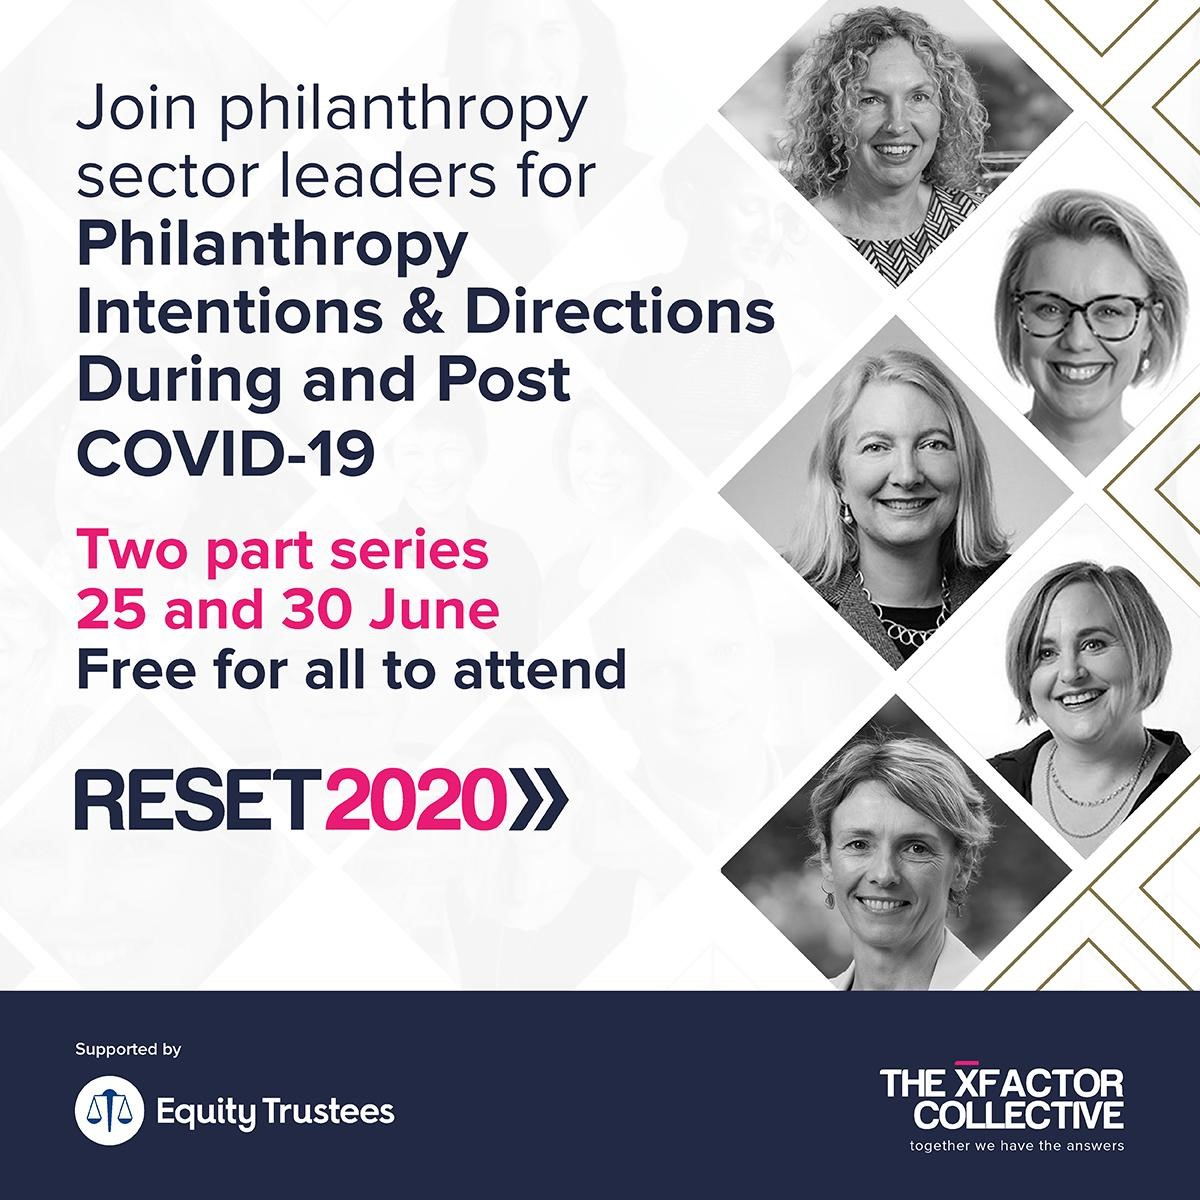 reset 2020 live shows 78